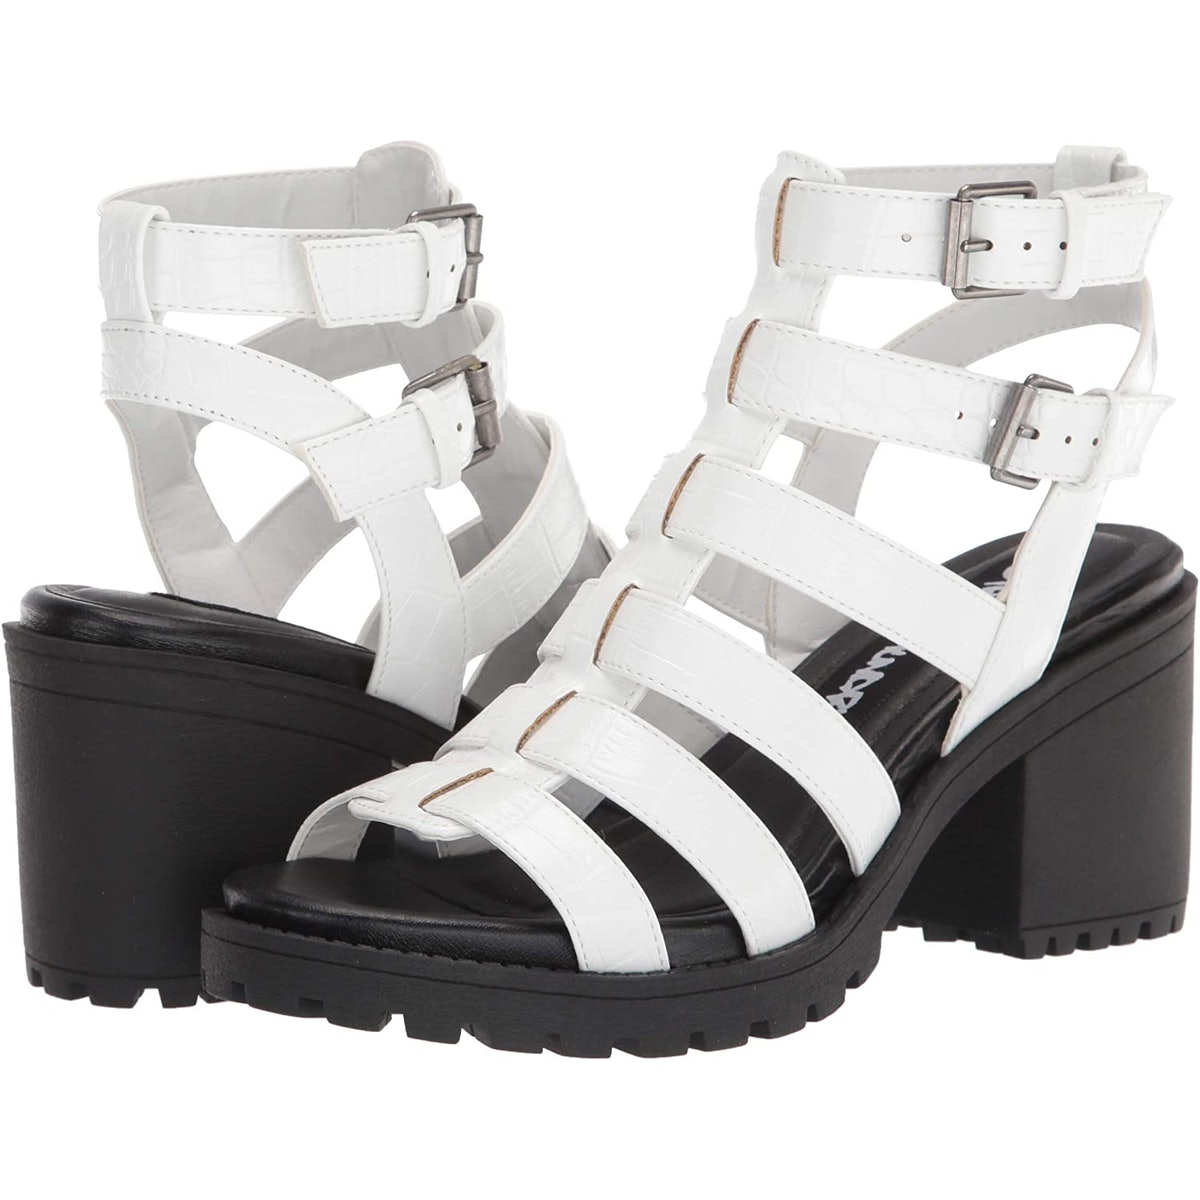 Dirty Laundry by Chinese Laundry Heeled Sandals